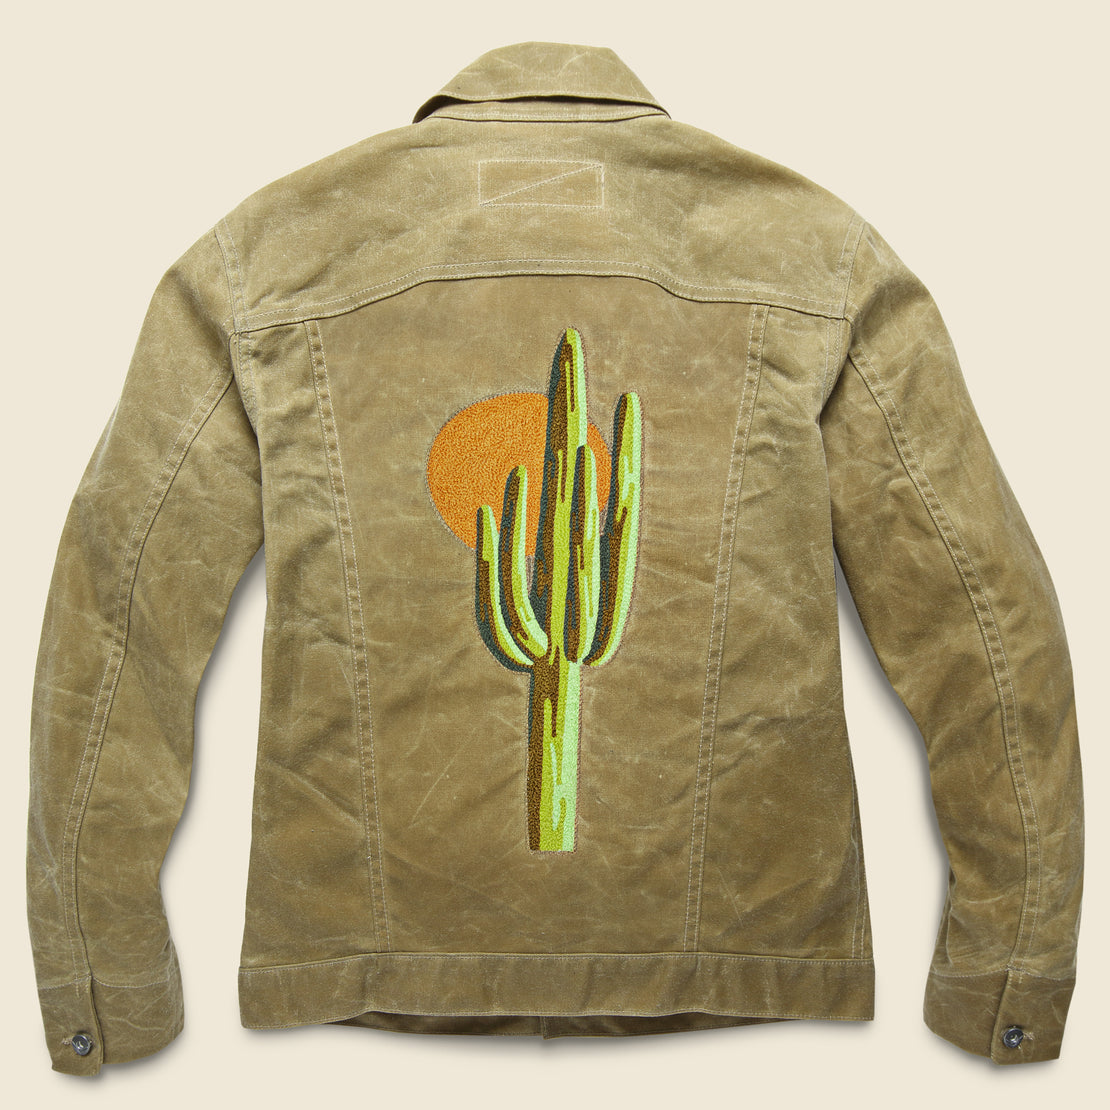 Fort Lonesome Rogue Territory Waxed Ridgeline Supply Jacket - Sunset Saguaro